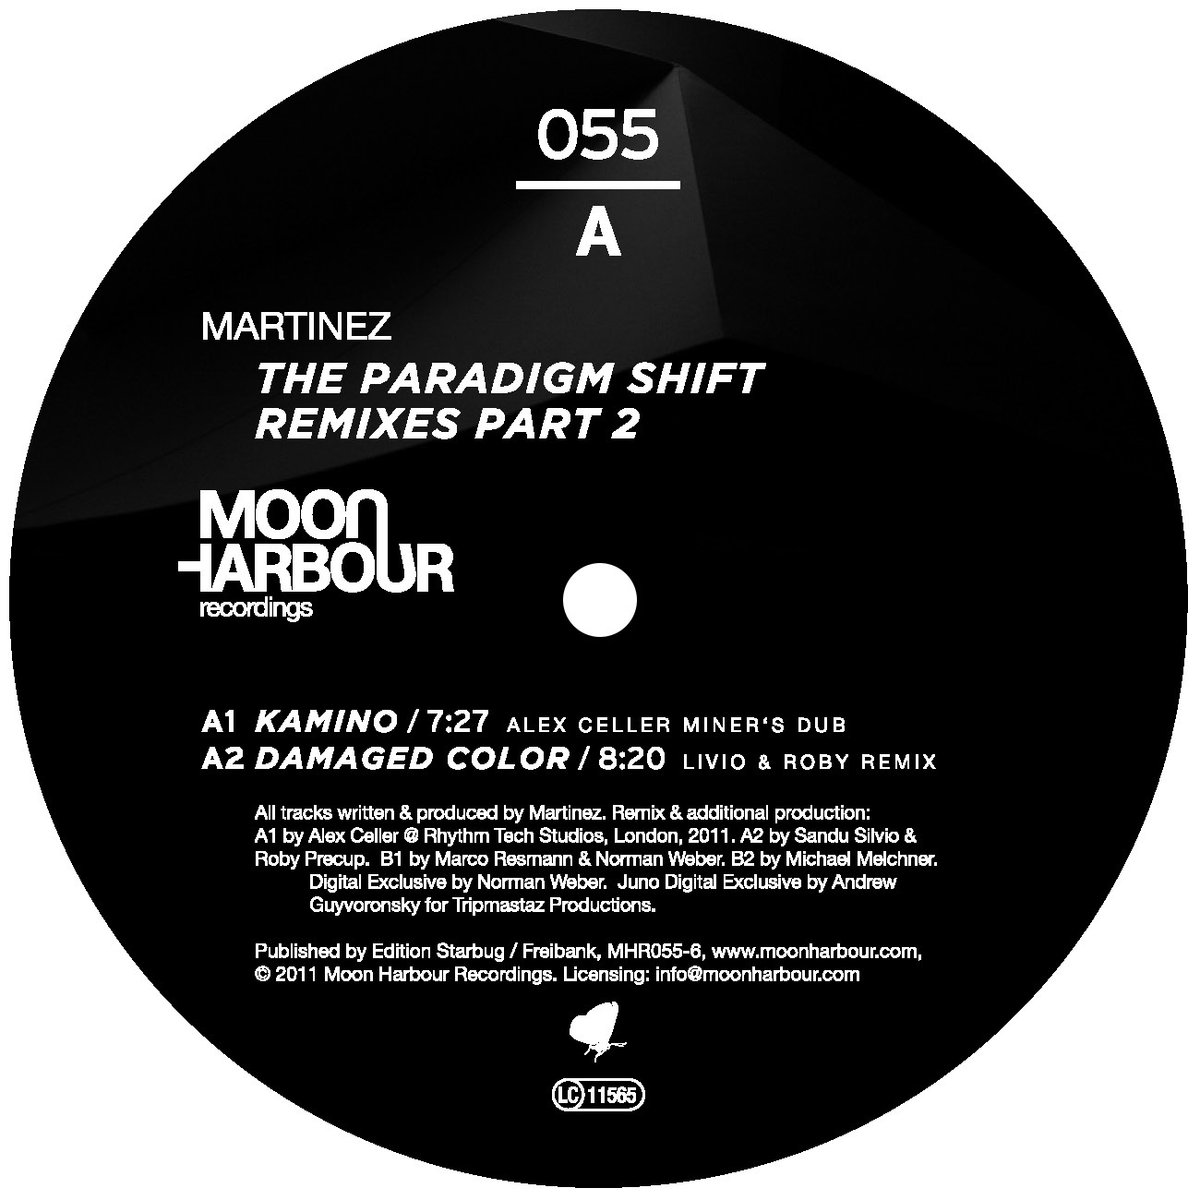 """Mainly influenced by Chicago House, """"The Paradigm Shift"""" also covers Techno, Breakbeat and dubby Downtempo sounds."""